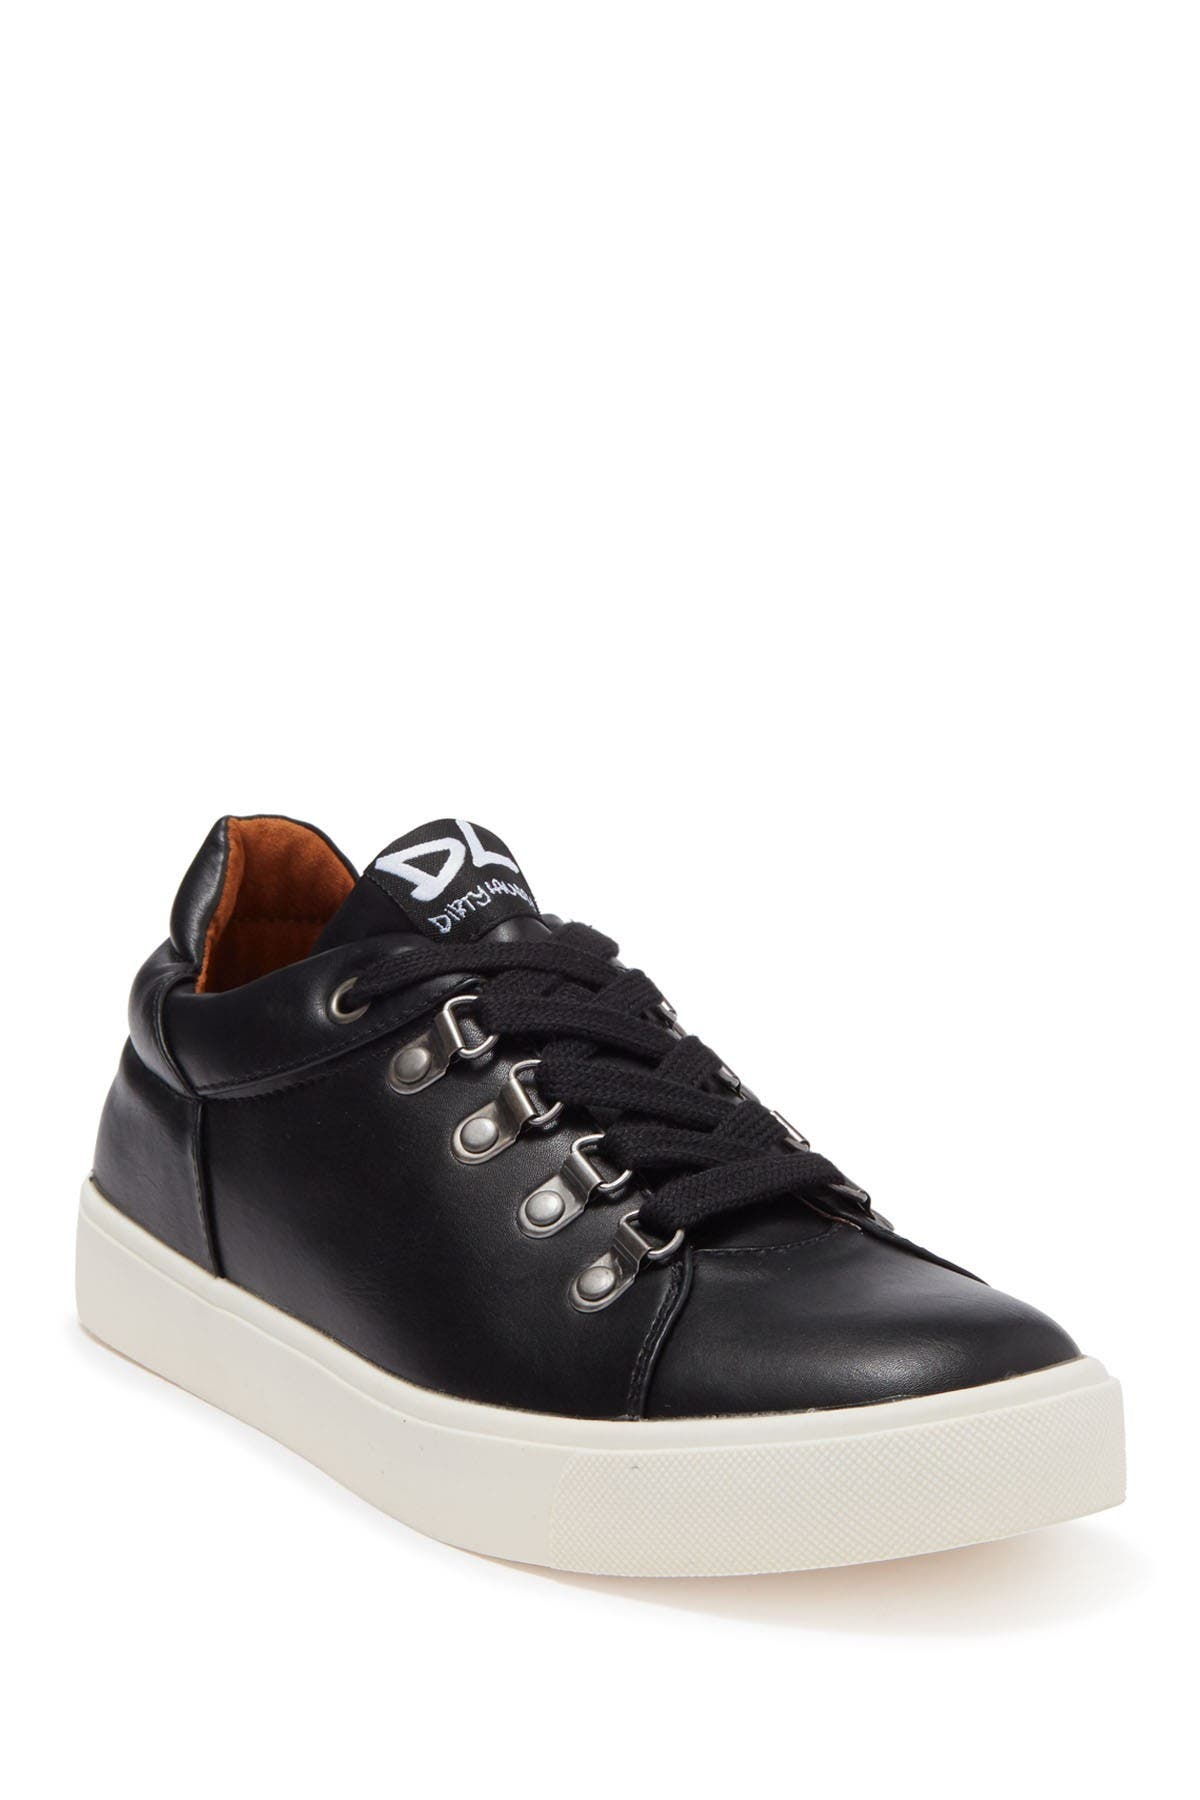 Image of Dirty Laundry Elle Low Top Sneaker